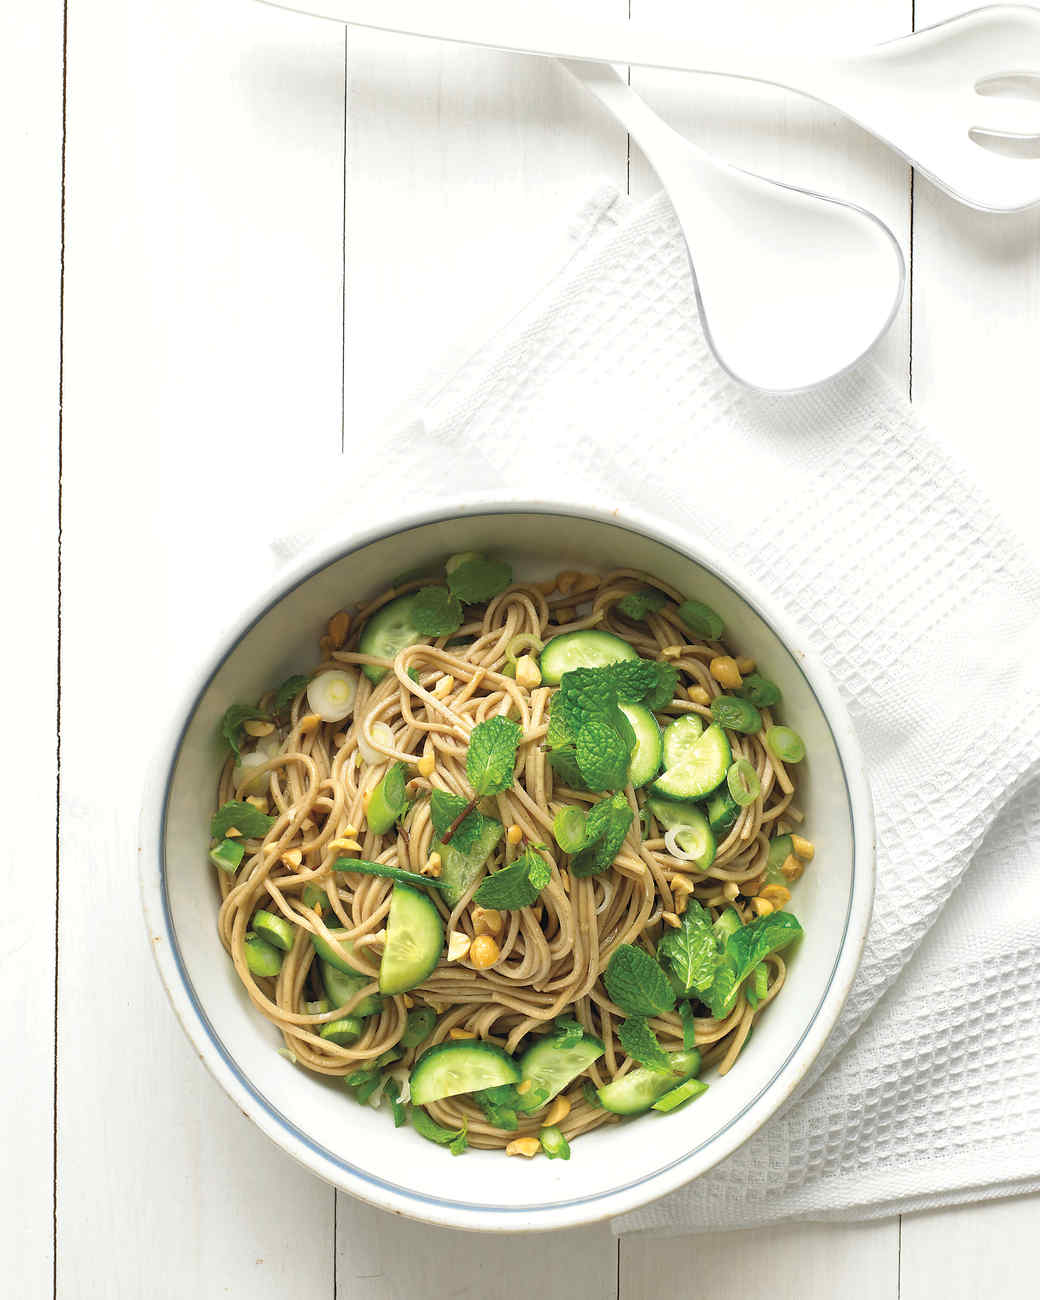 Asian Noodle Salad with Peanuts and Mint